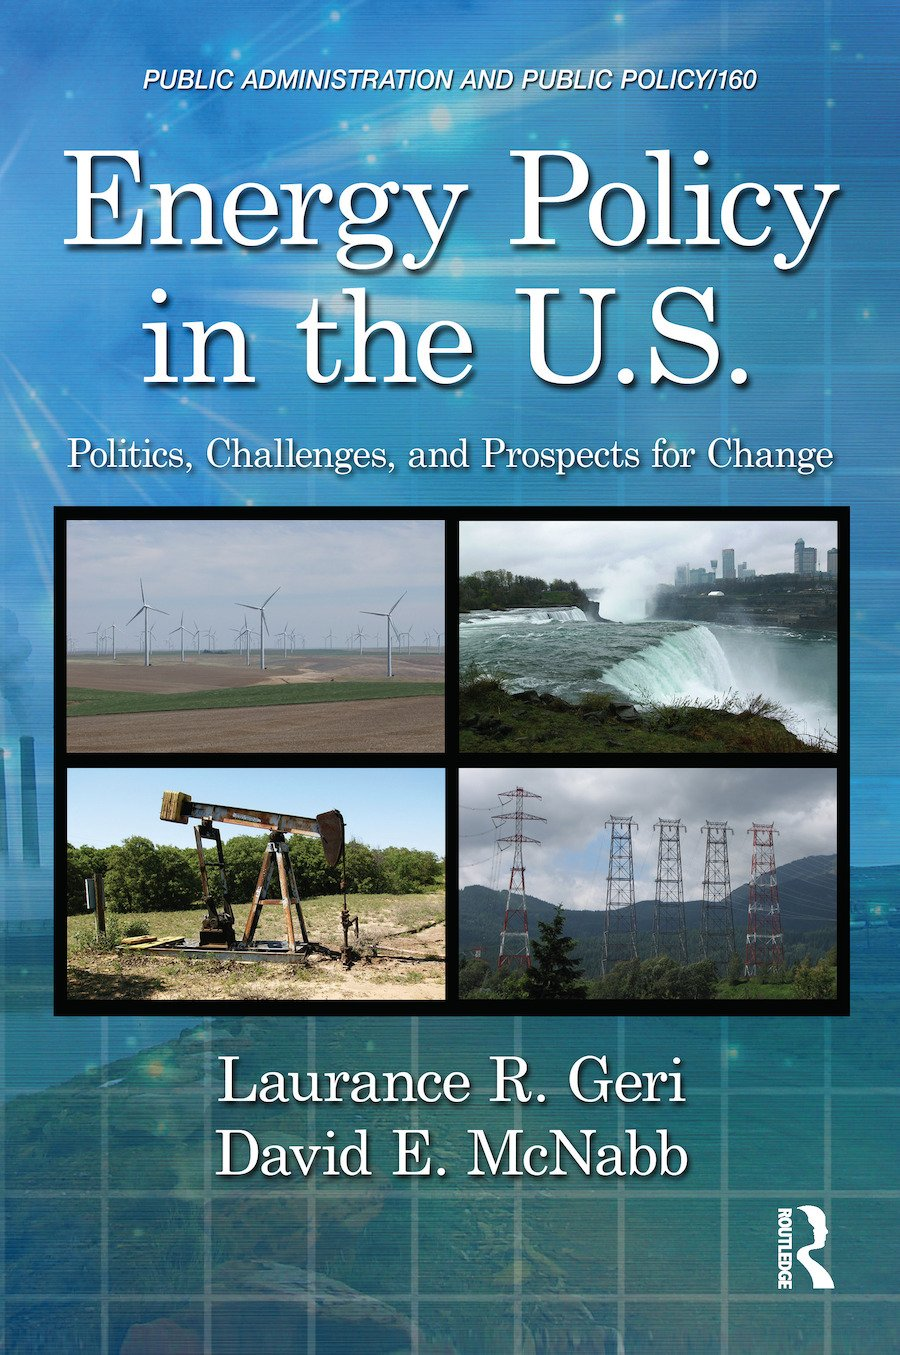 Energy Policy in the U.S.: Politics, Challenges, and Prospects for Change book cover